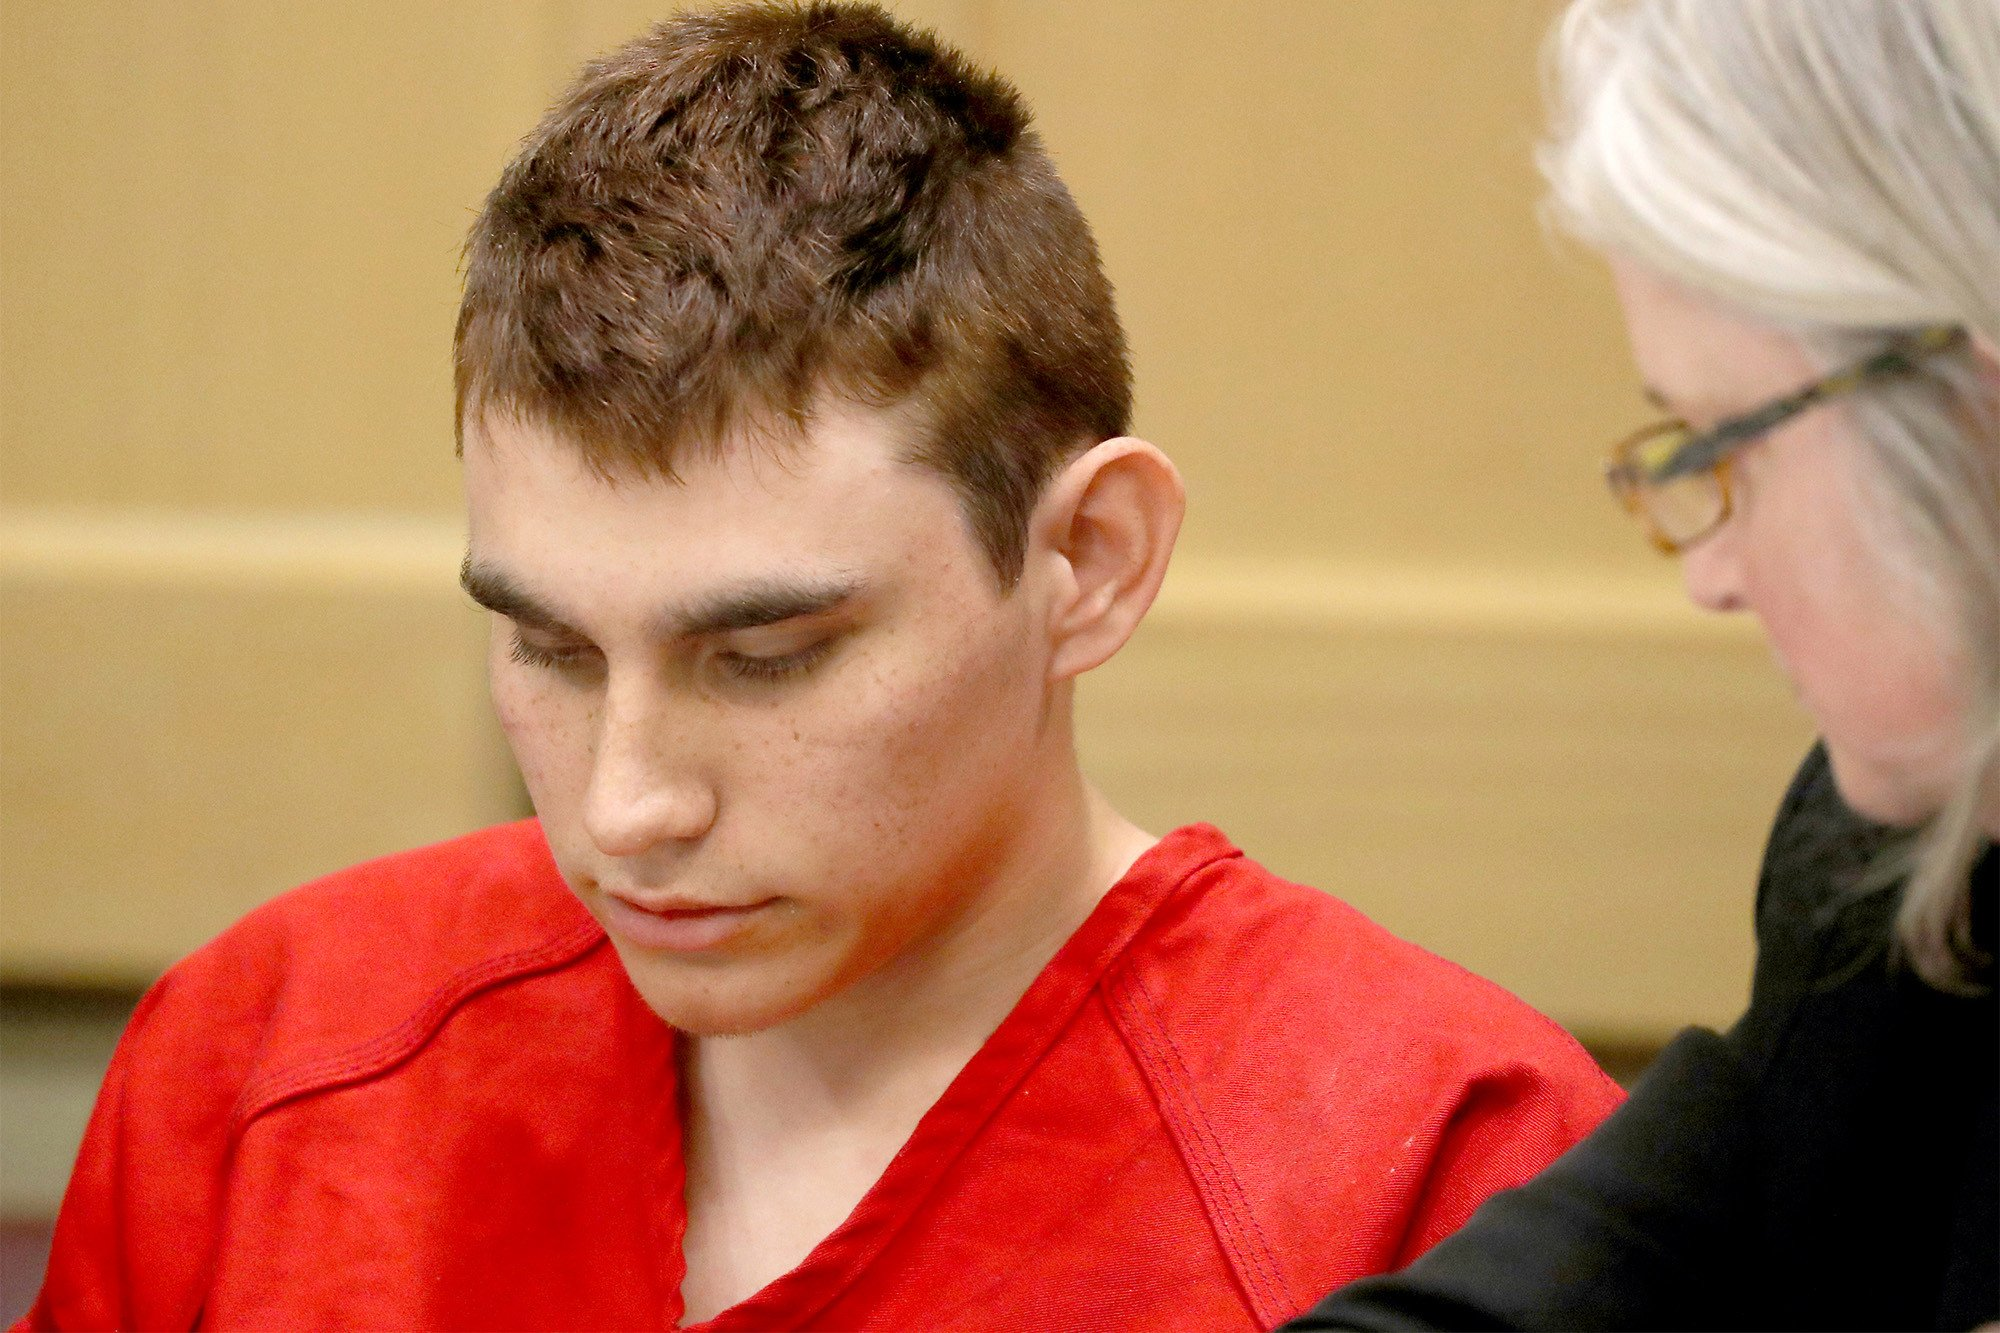 School shooter texted pal just before massacre: 'No big deal. Nothing bad'